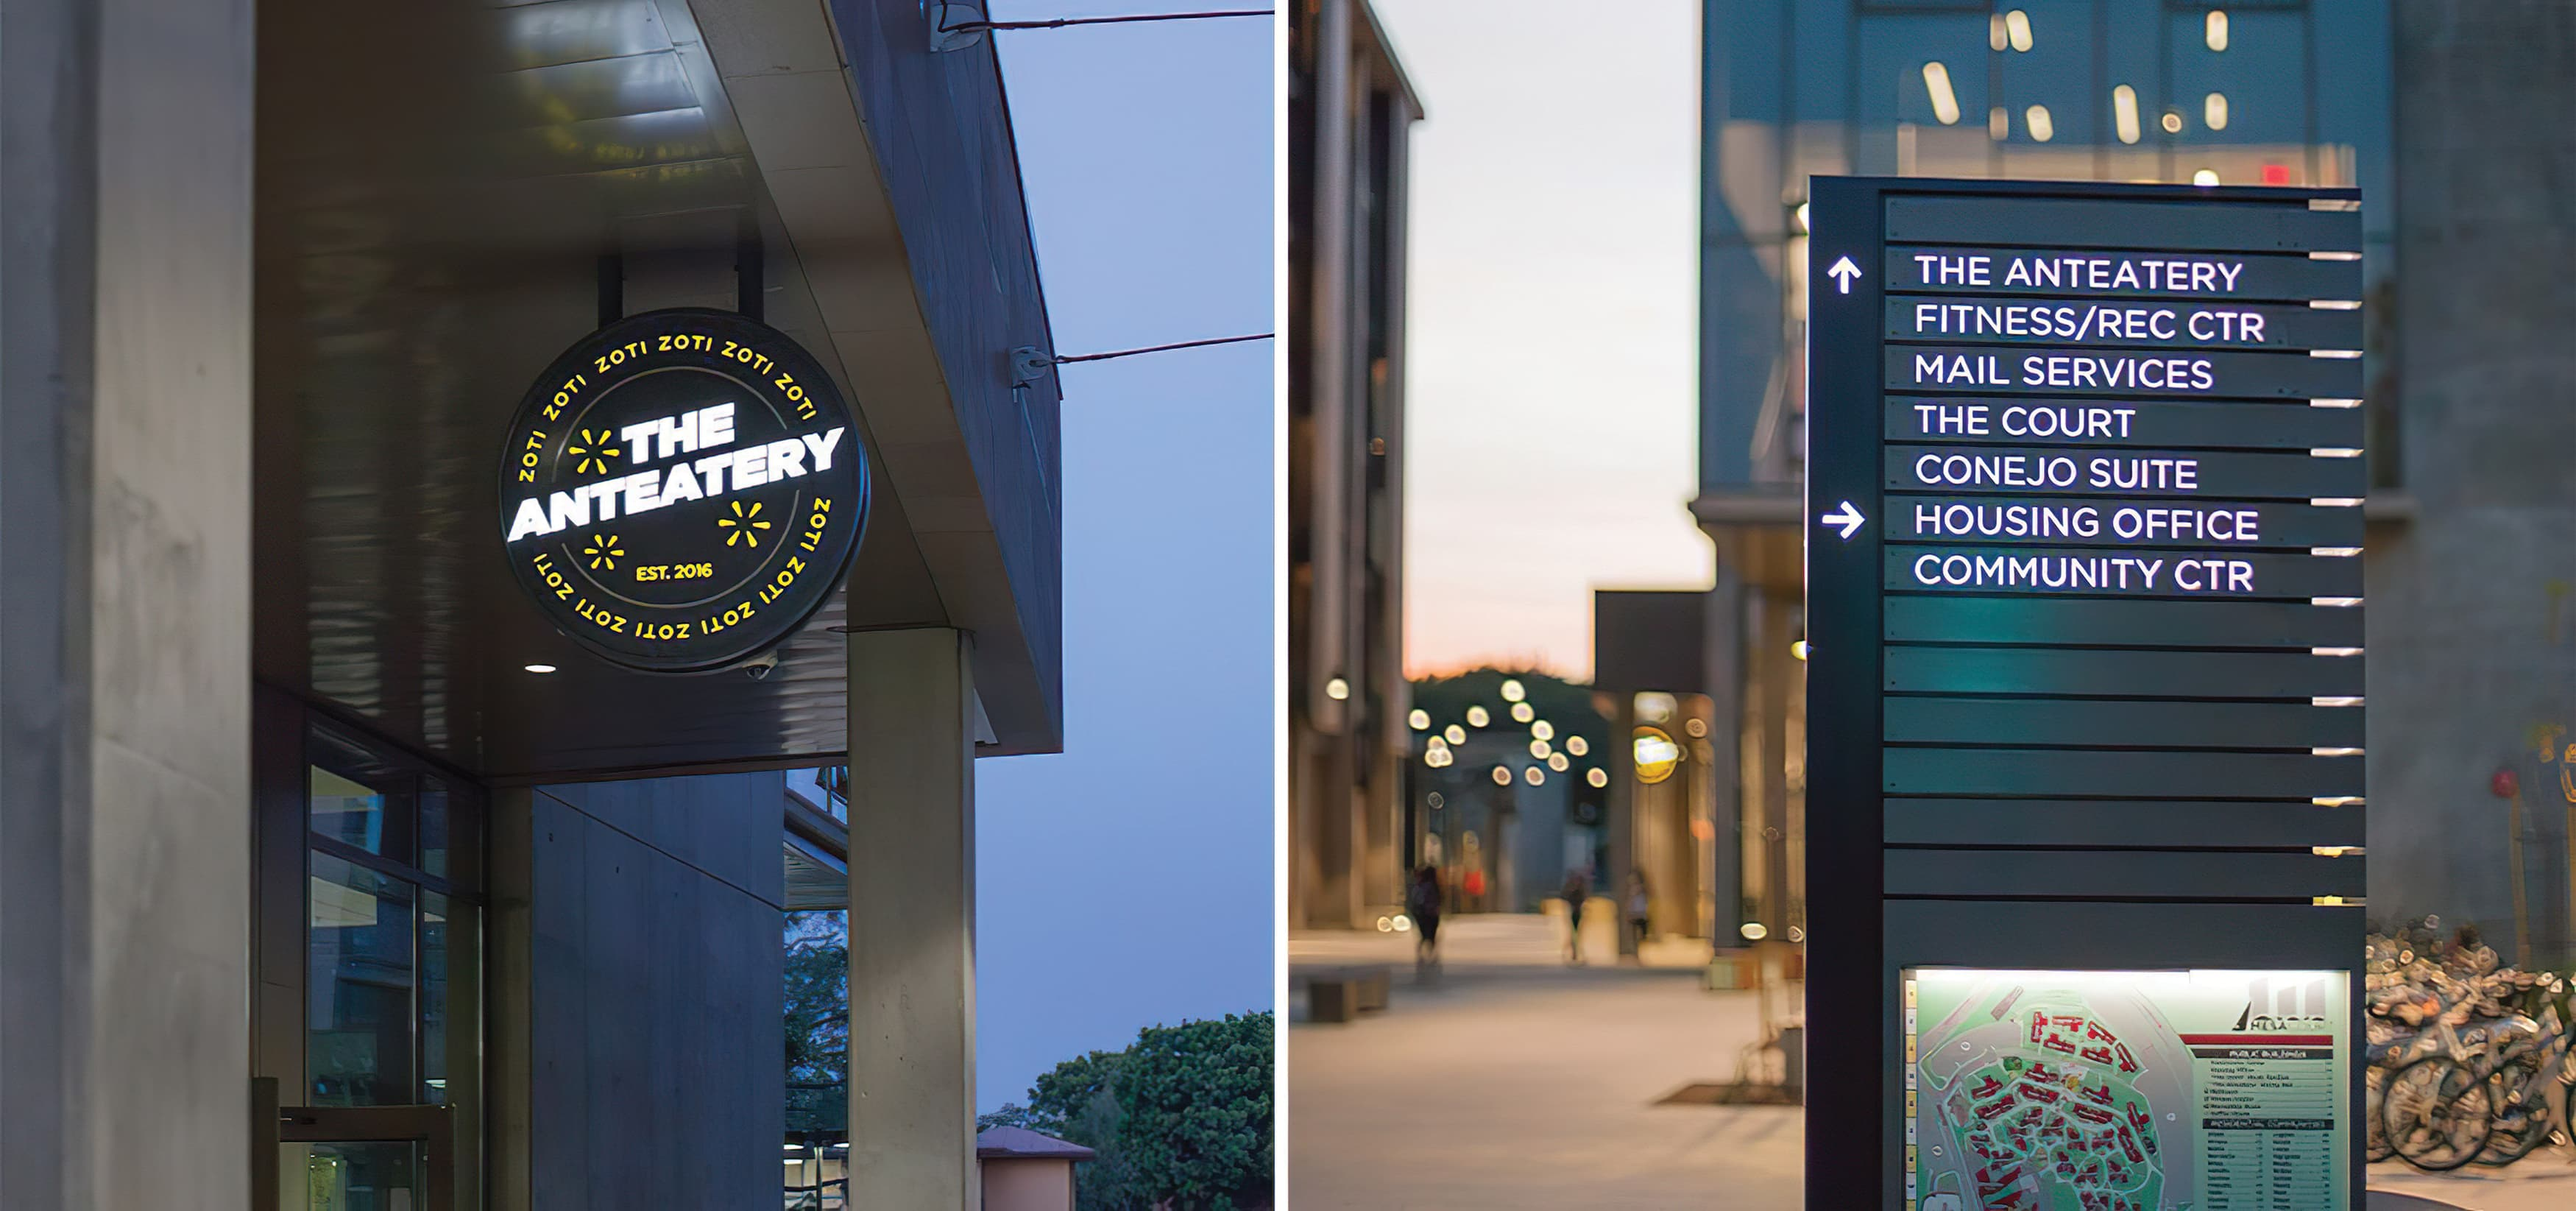 Mesa Court, located in University of California, Irvine campus. On-campus residential buildings. Cafeteria Identity Blade Sign. Pedestrian Wayfinding Design.